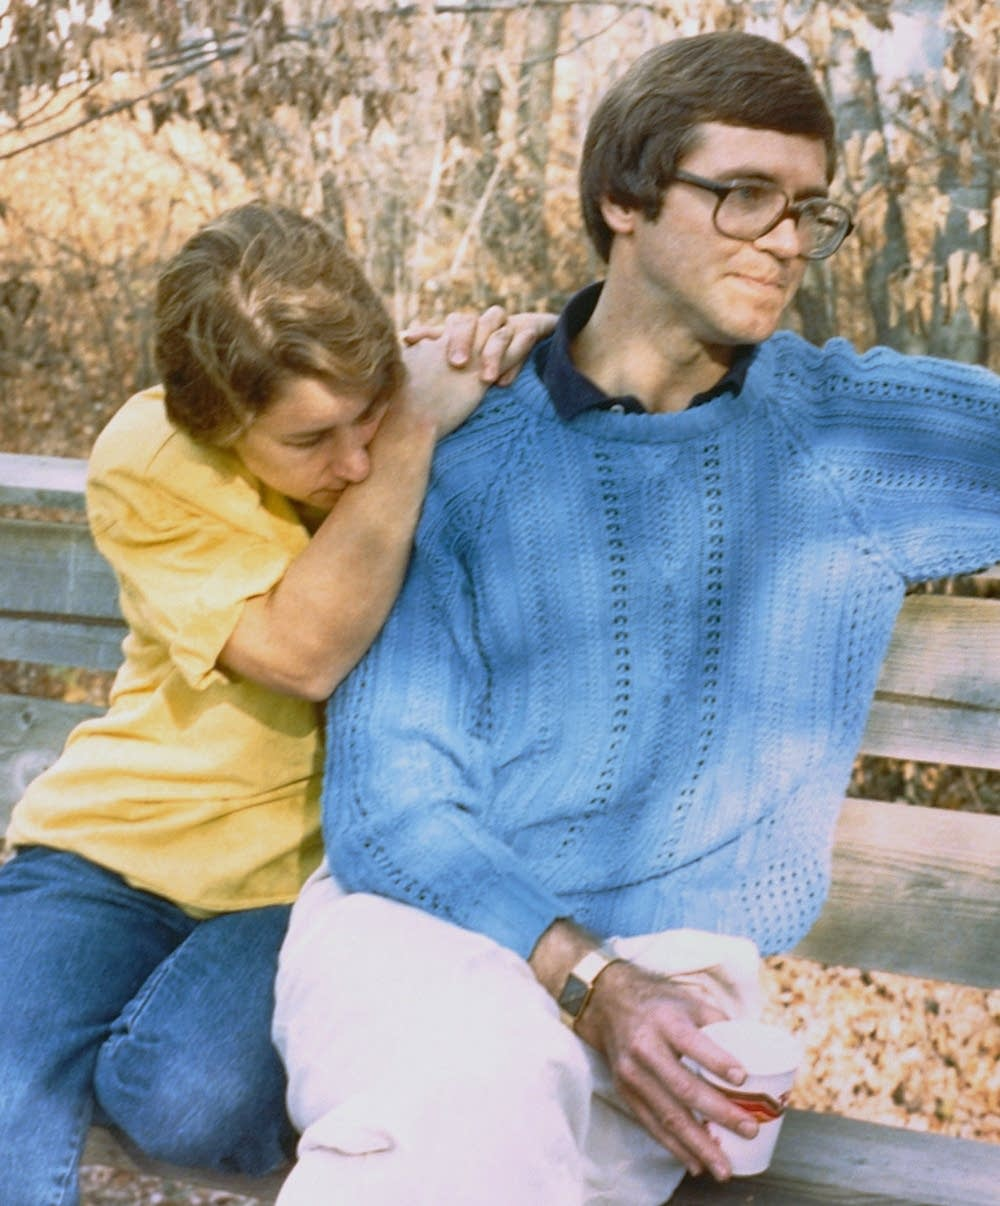 Jerry and Patty Wetterling on Oct. 26, 1989